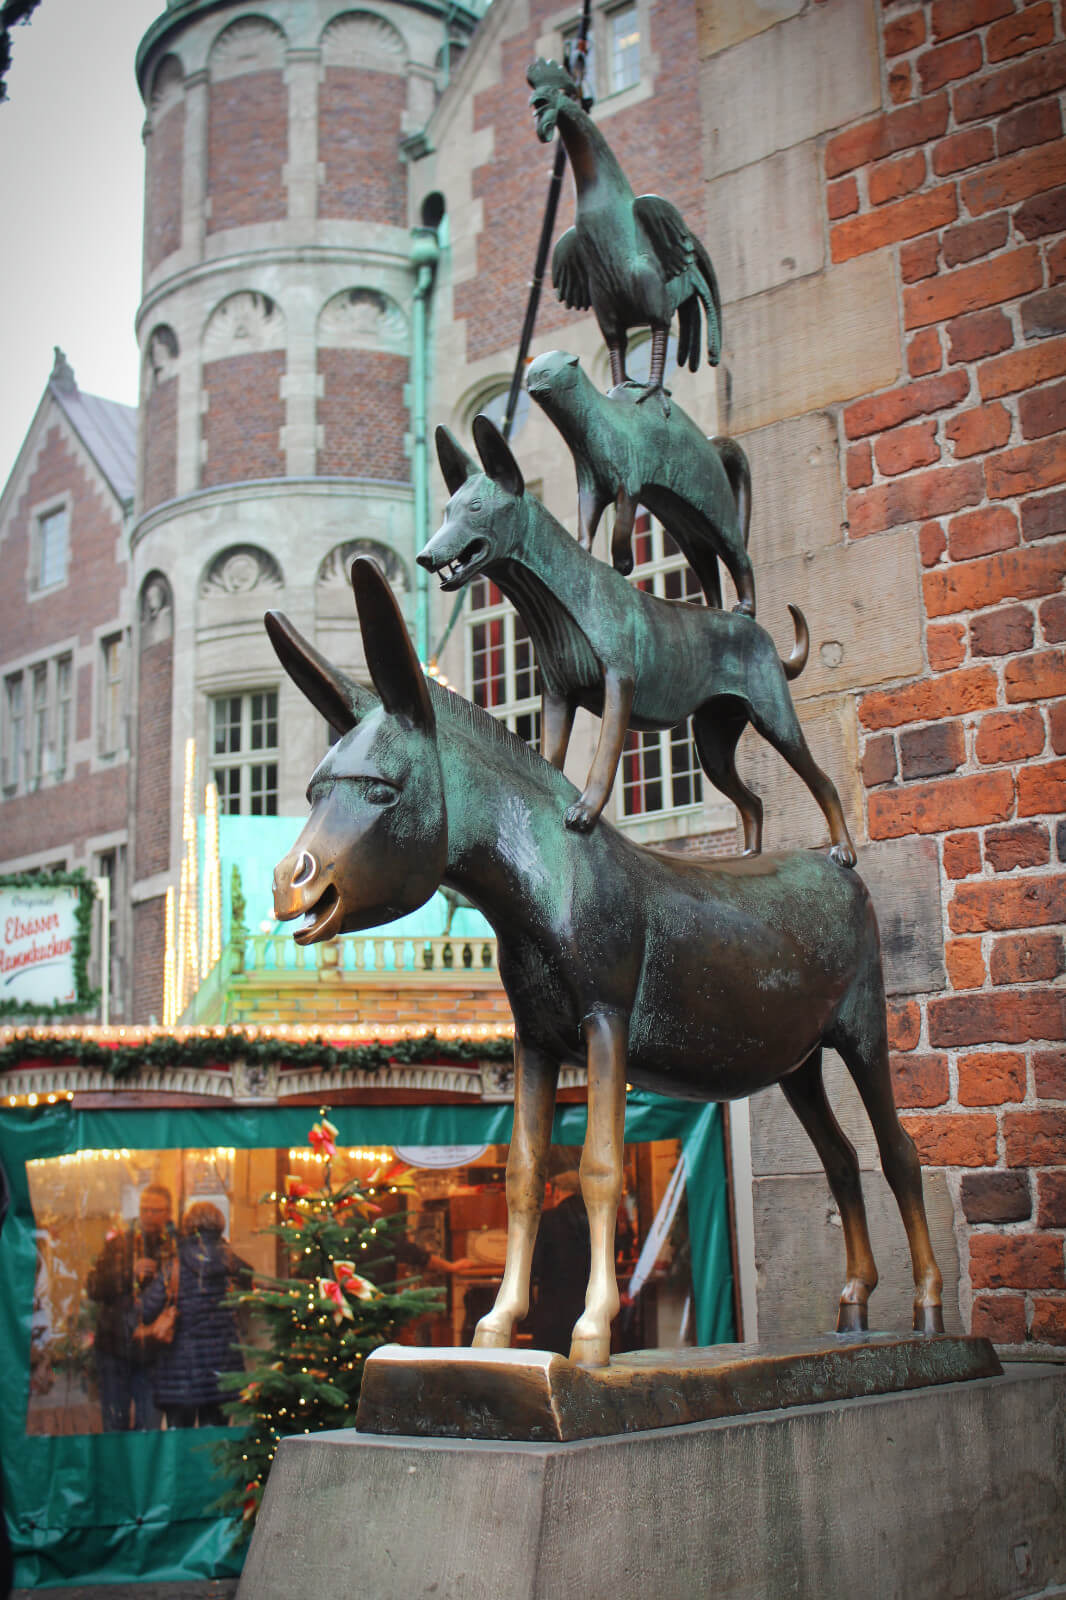 The famous Bremen Town Musicians, star of the Brother's Grimm fairytale that is one of Bremen, Germany's claims to fame.